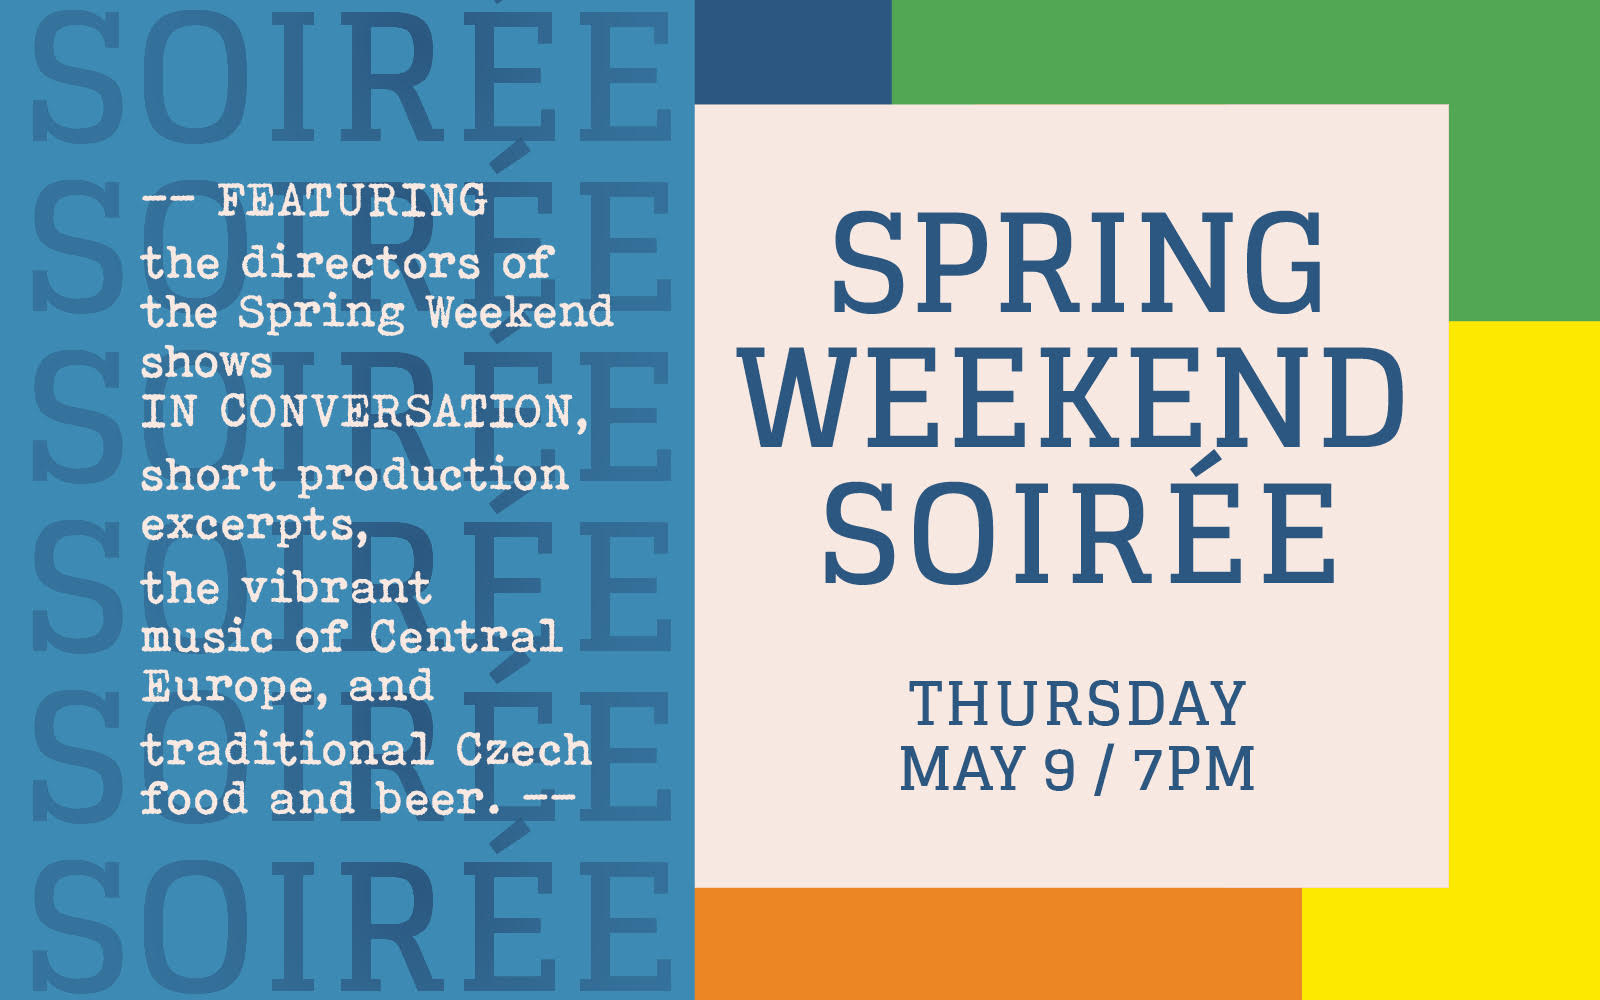 Spring Weekend Soiree benefit night 09 May, 2019 – 7:00 PM